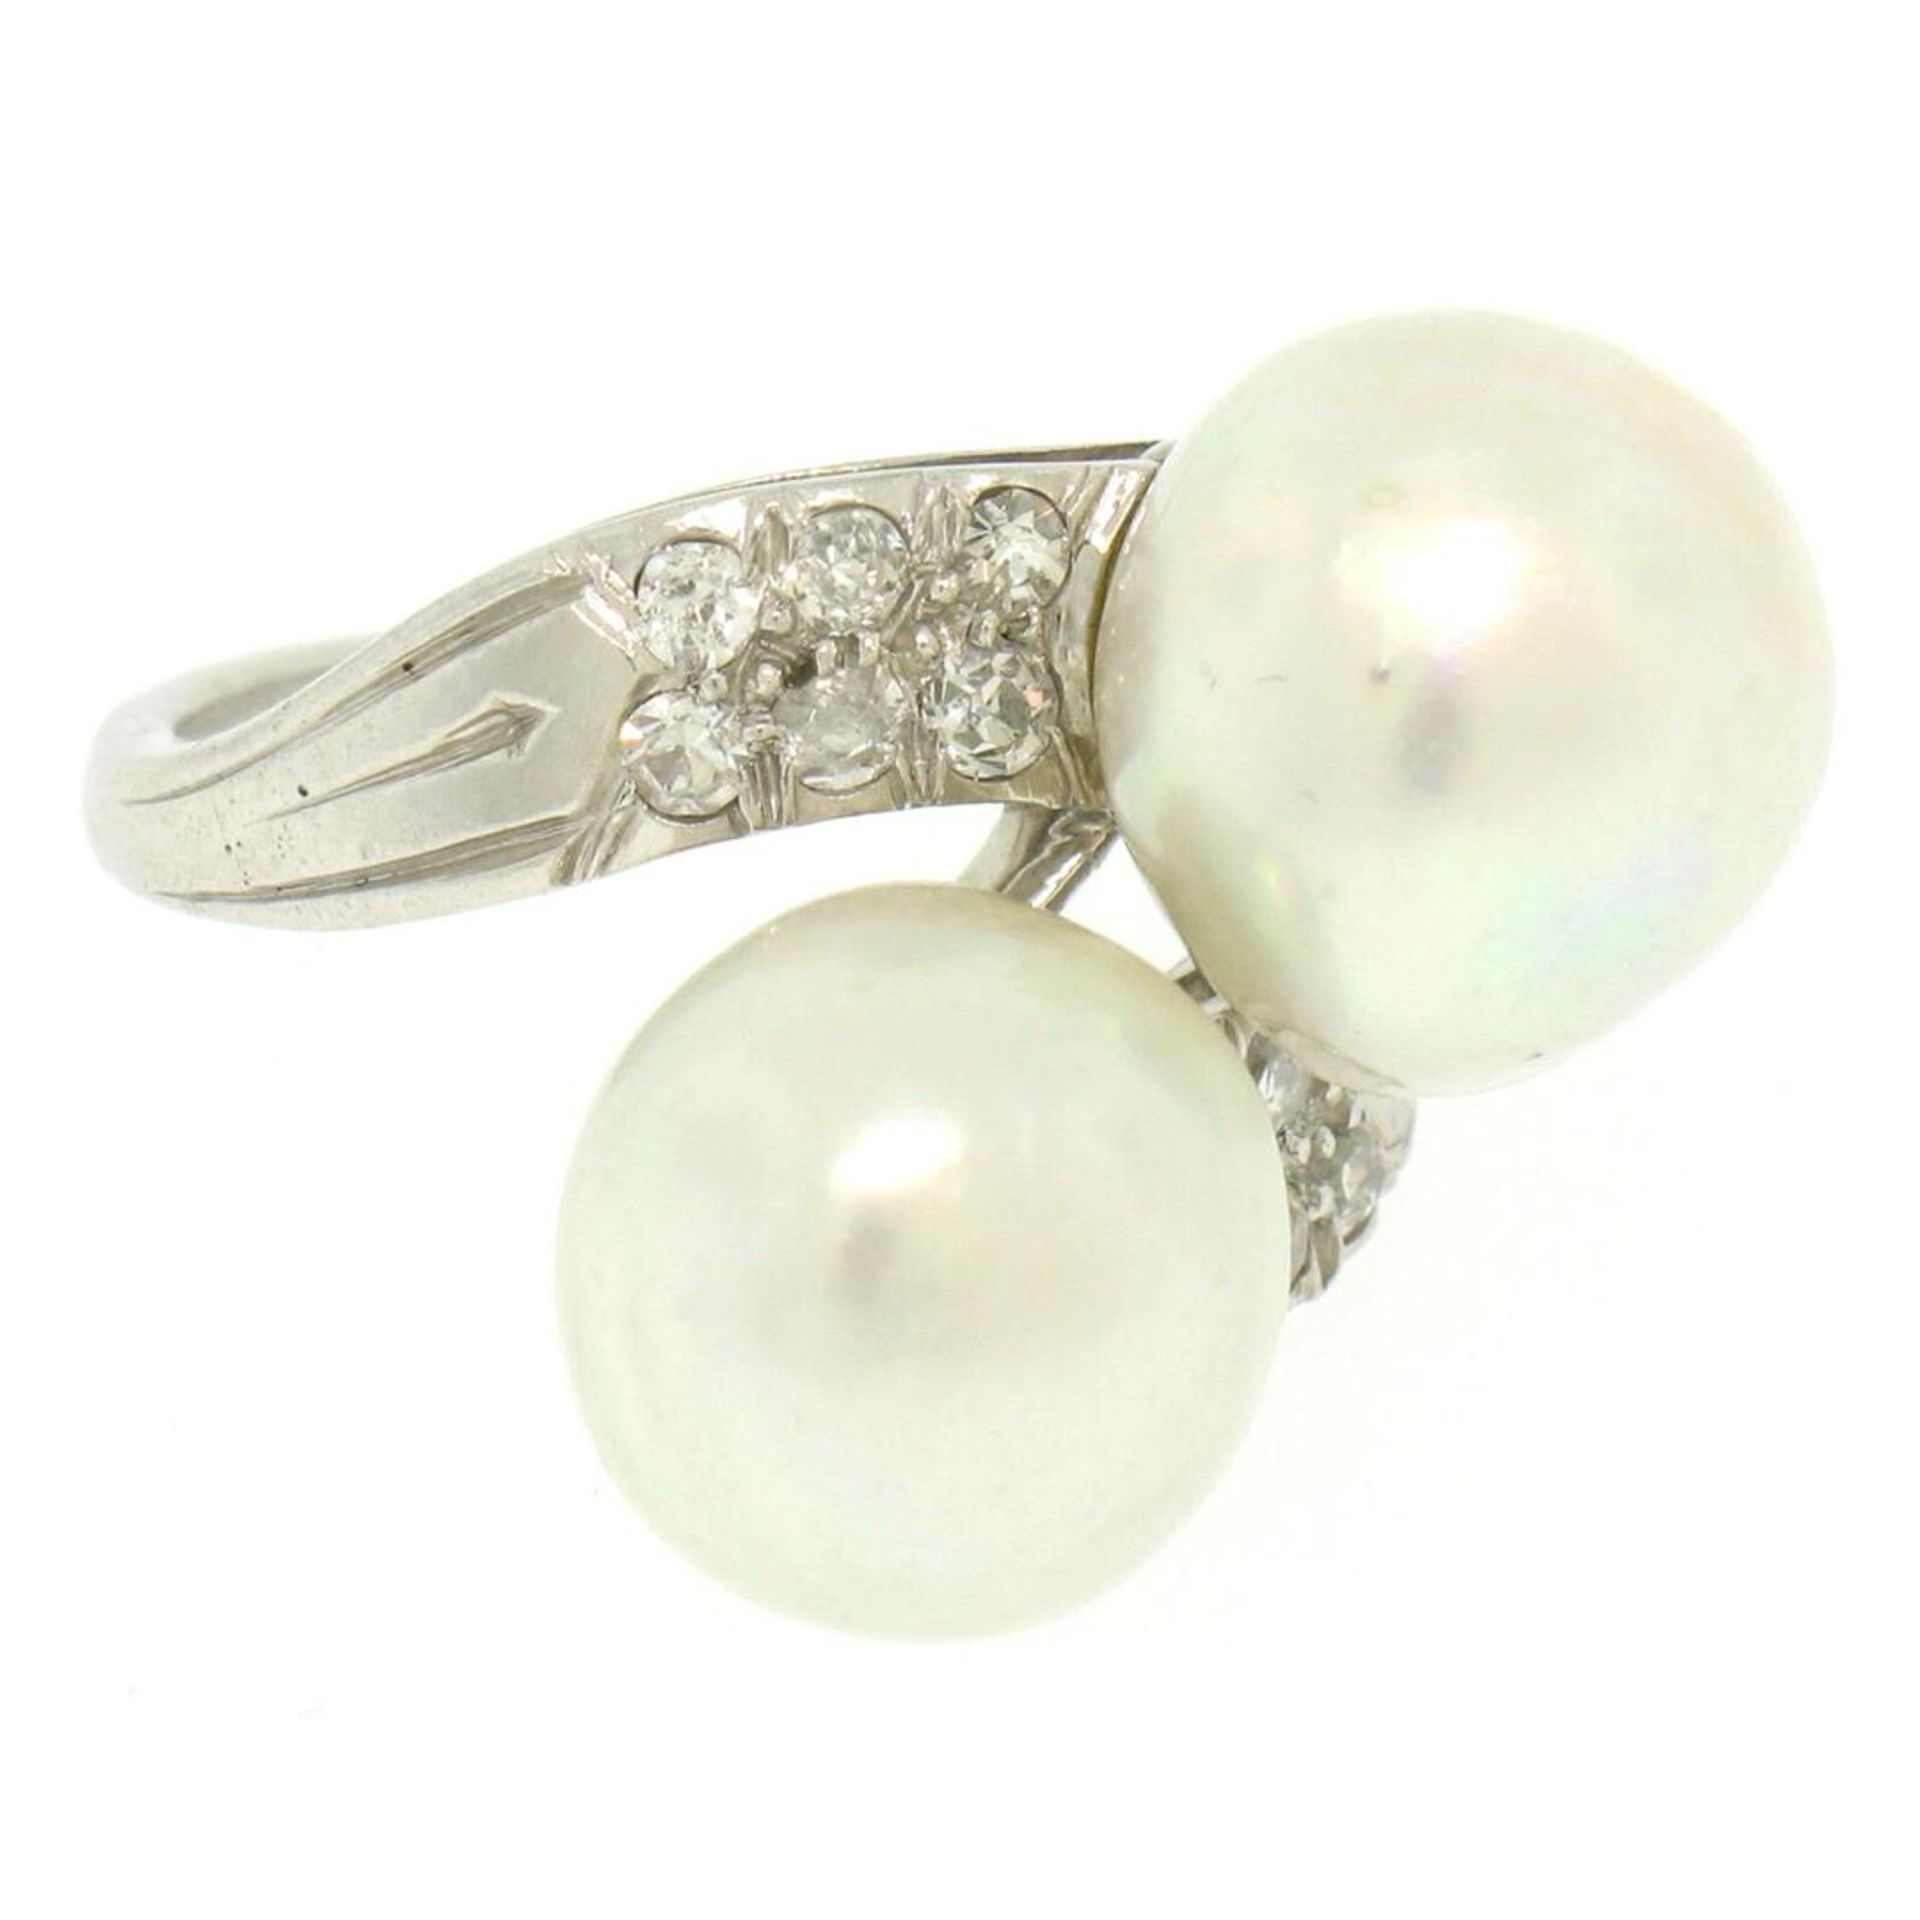 GIA Certified Solid Platinum Pearl & Diamond Bypass Cocktail Ring - Image 9 of 9